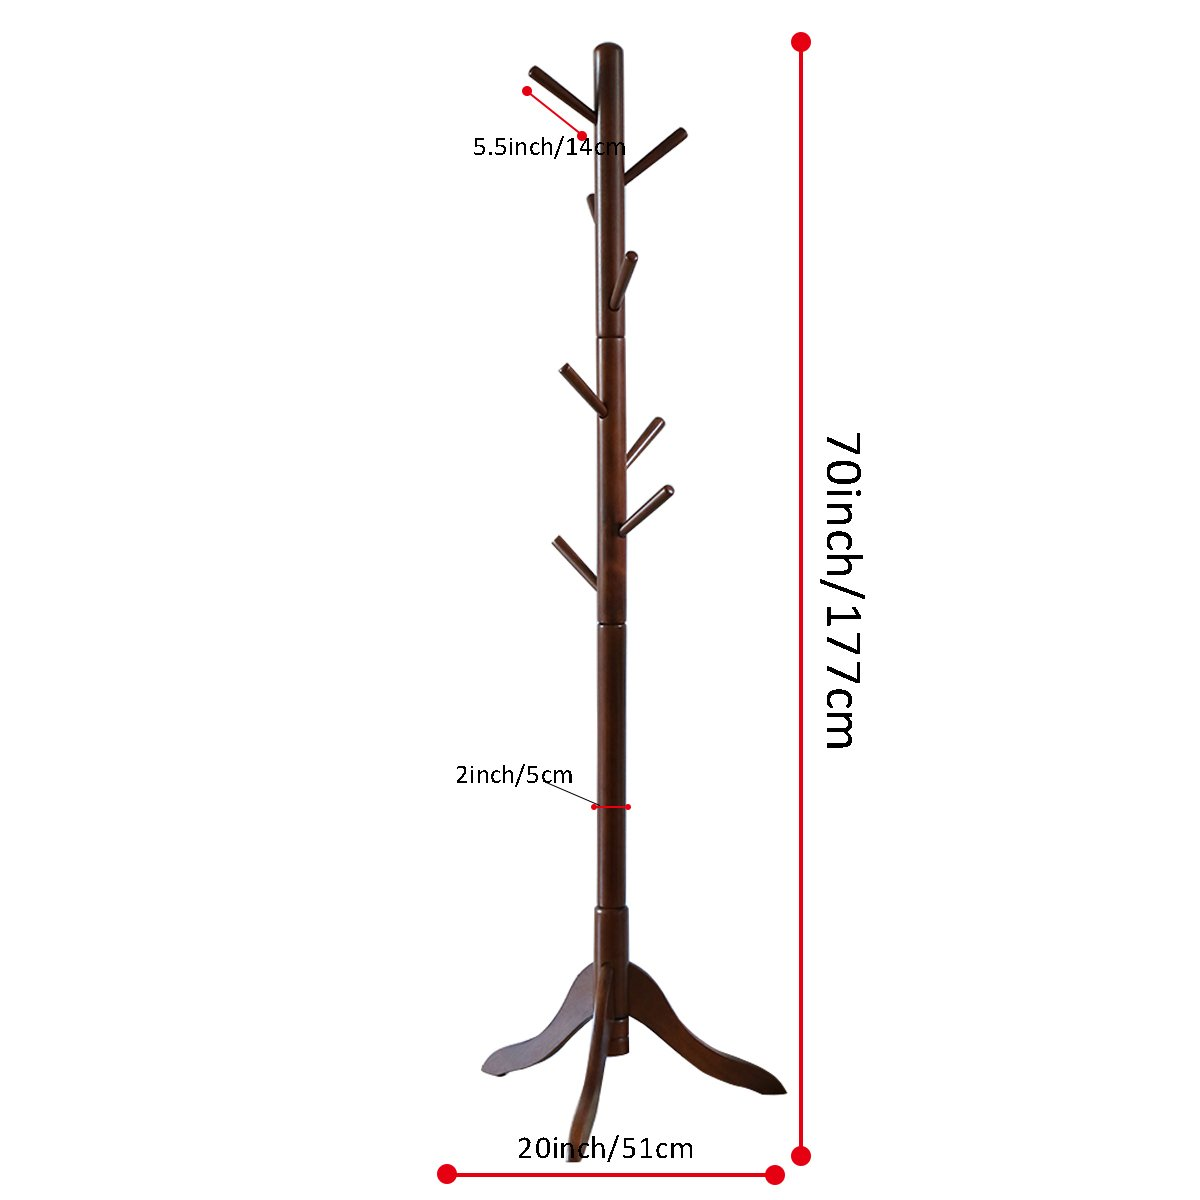 LCH Sturdy Coat Rack Solid Rubber Wood Hall Tree with Tripod Base, 8 Hooks,Also Suitable for Kids(Coffee) by LCH (Image #3)